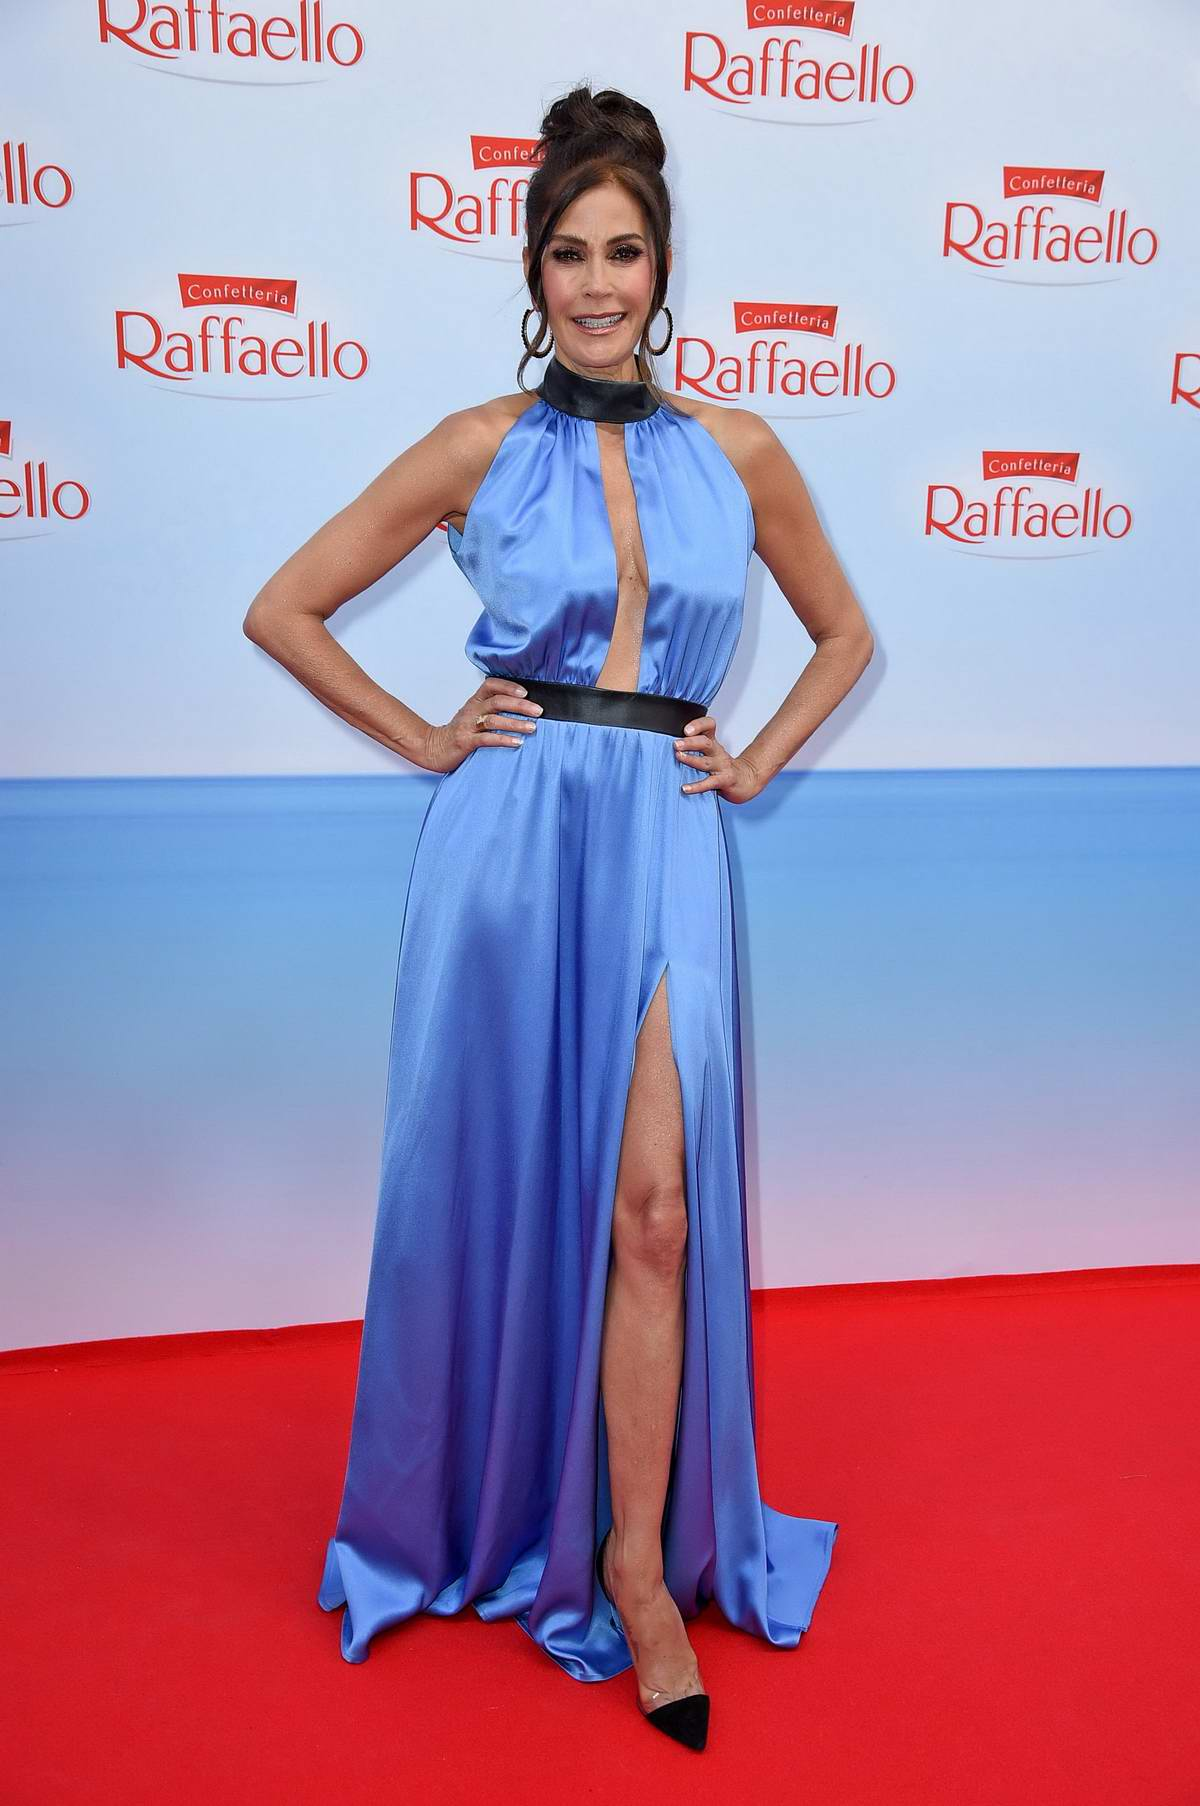 Teri Hatcher attends the Raffaello Summer Day in Berlin, Germany